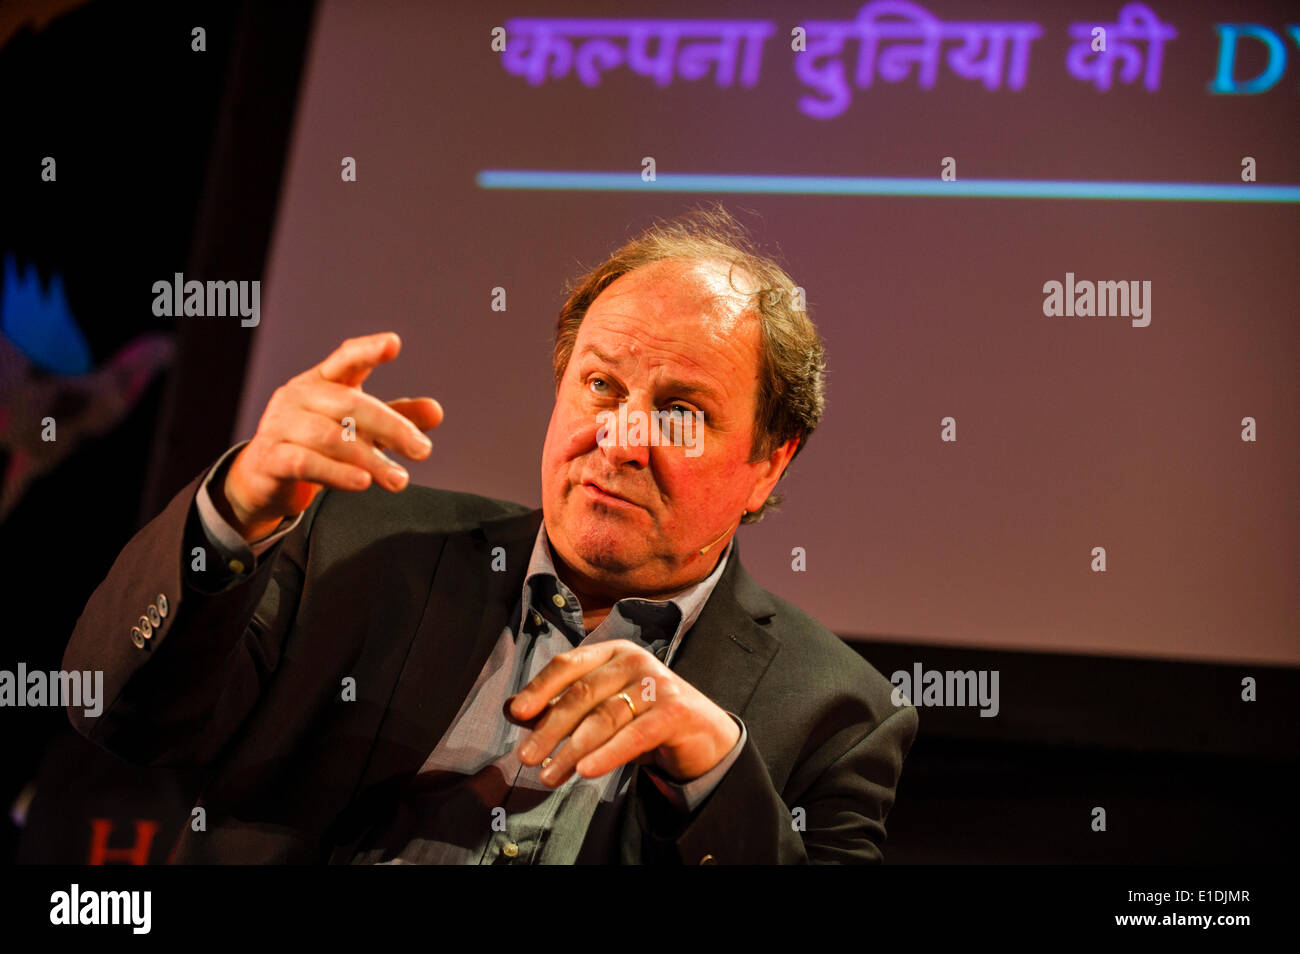 Hay-on-Wye, Powys, UK. 1st June, 2014. The broadcaster James Naughtie introduces his first novel, a rivetting espionage thriller set in the 1970's Westminster at the height of the cold war, on the last day of the 27th Hay Festival of Literature and Arts 2014. Credit:  Graham M. Lawrence/Alamy Live News. - Stock Image